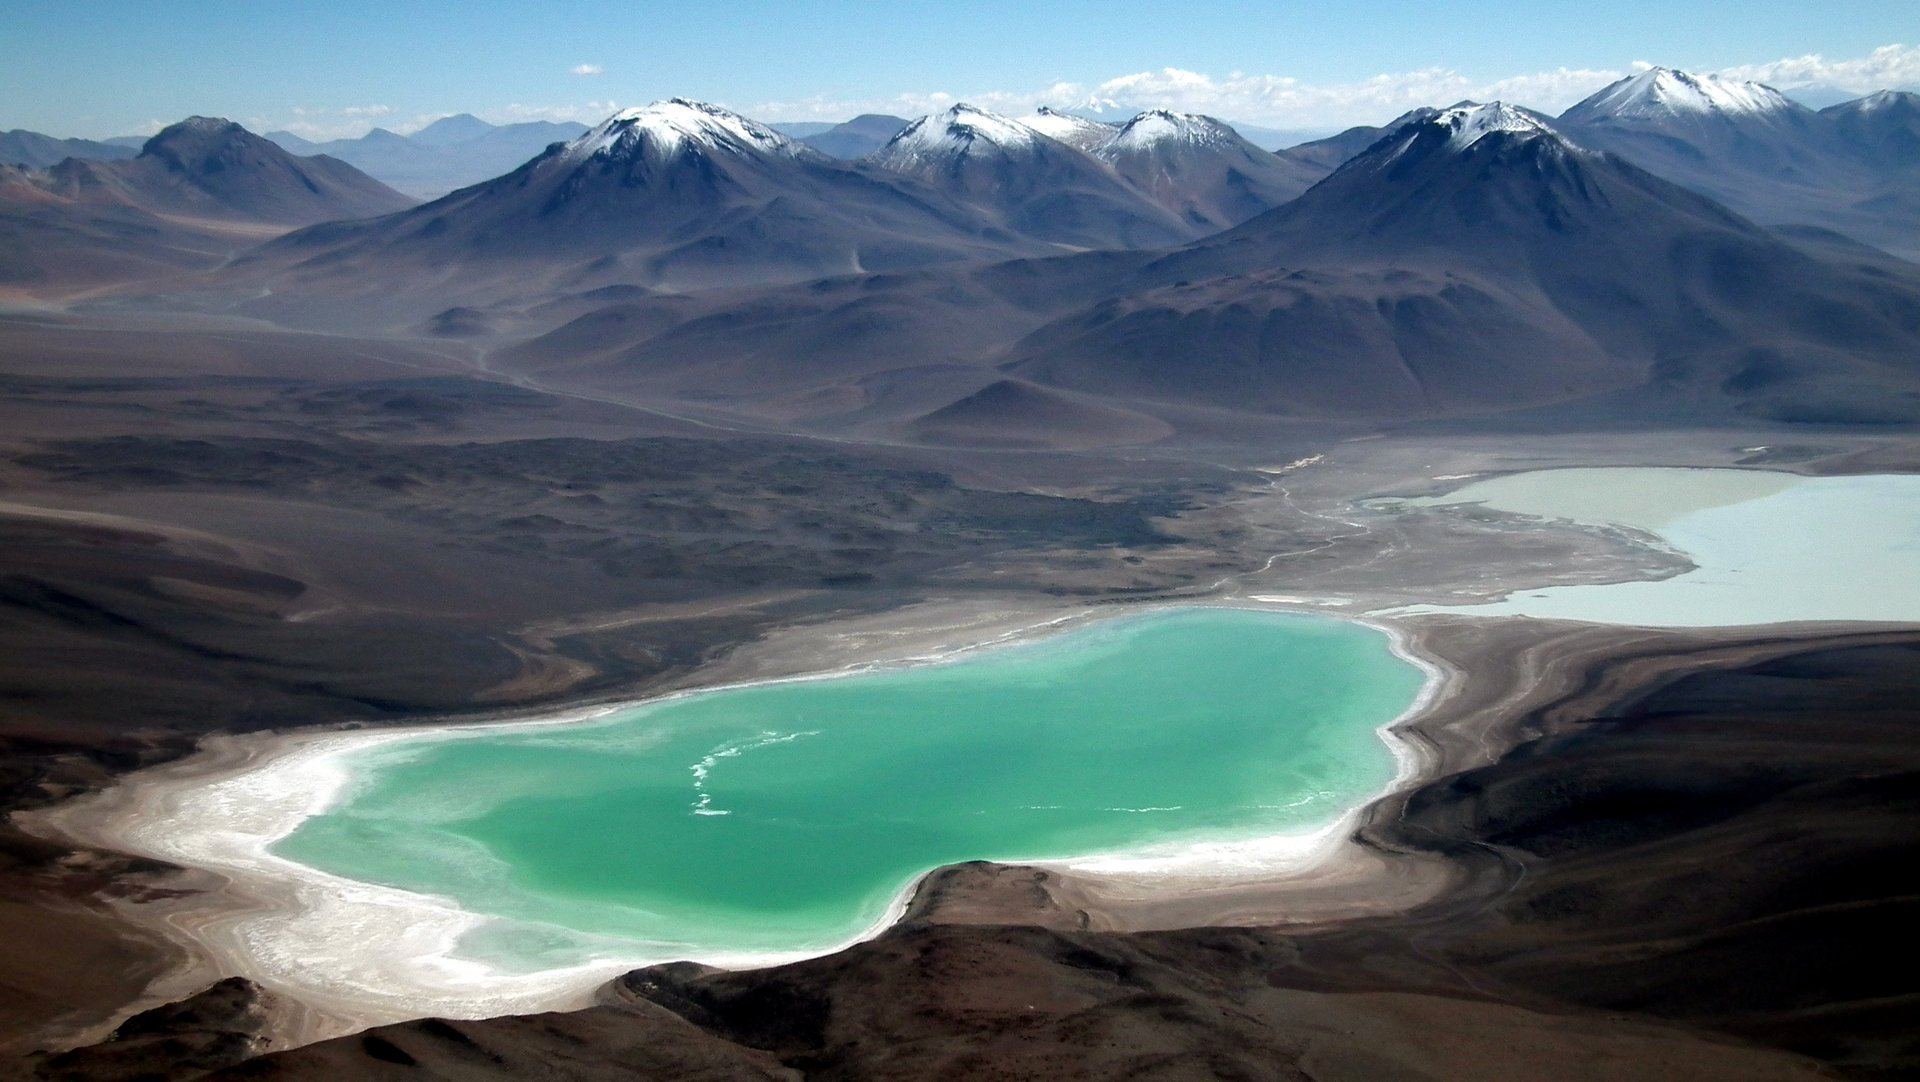 Laguna Verde and Laguna Blanca as seen from the summit of the Licancabur Volcano 2019